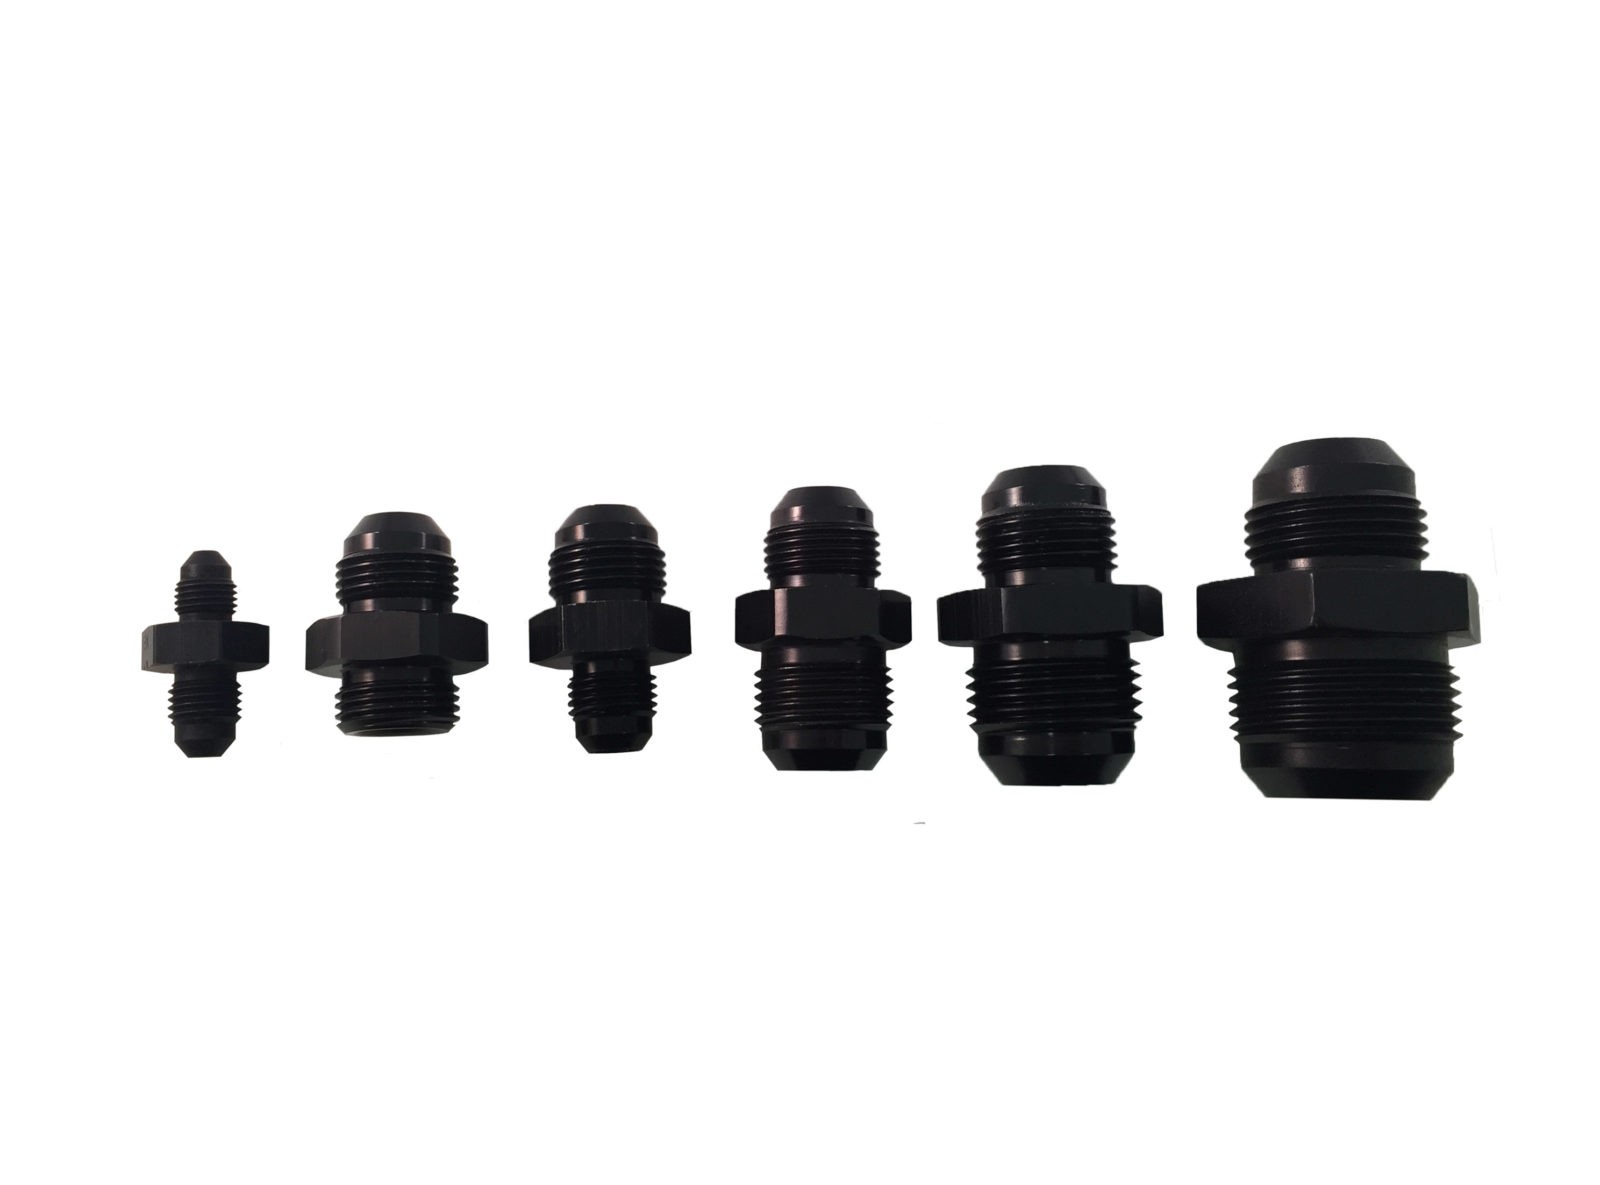 Black Flare Reducers made by PRP Racing Products